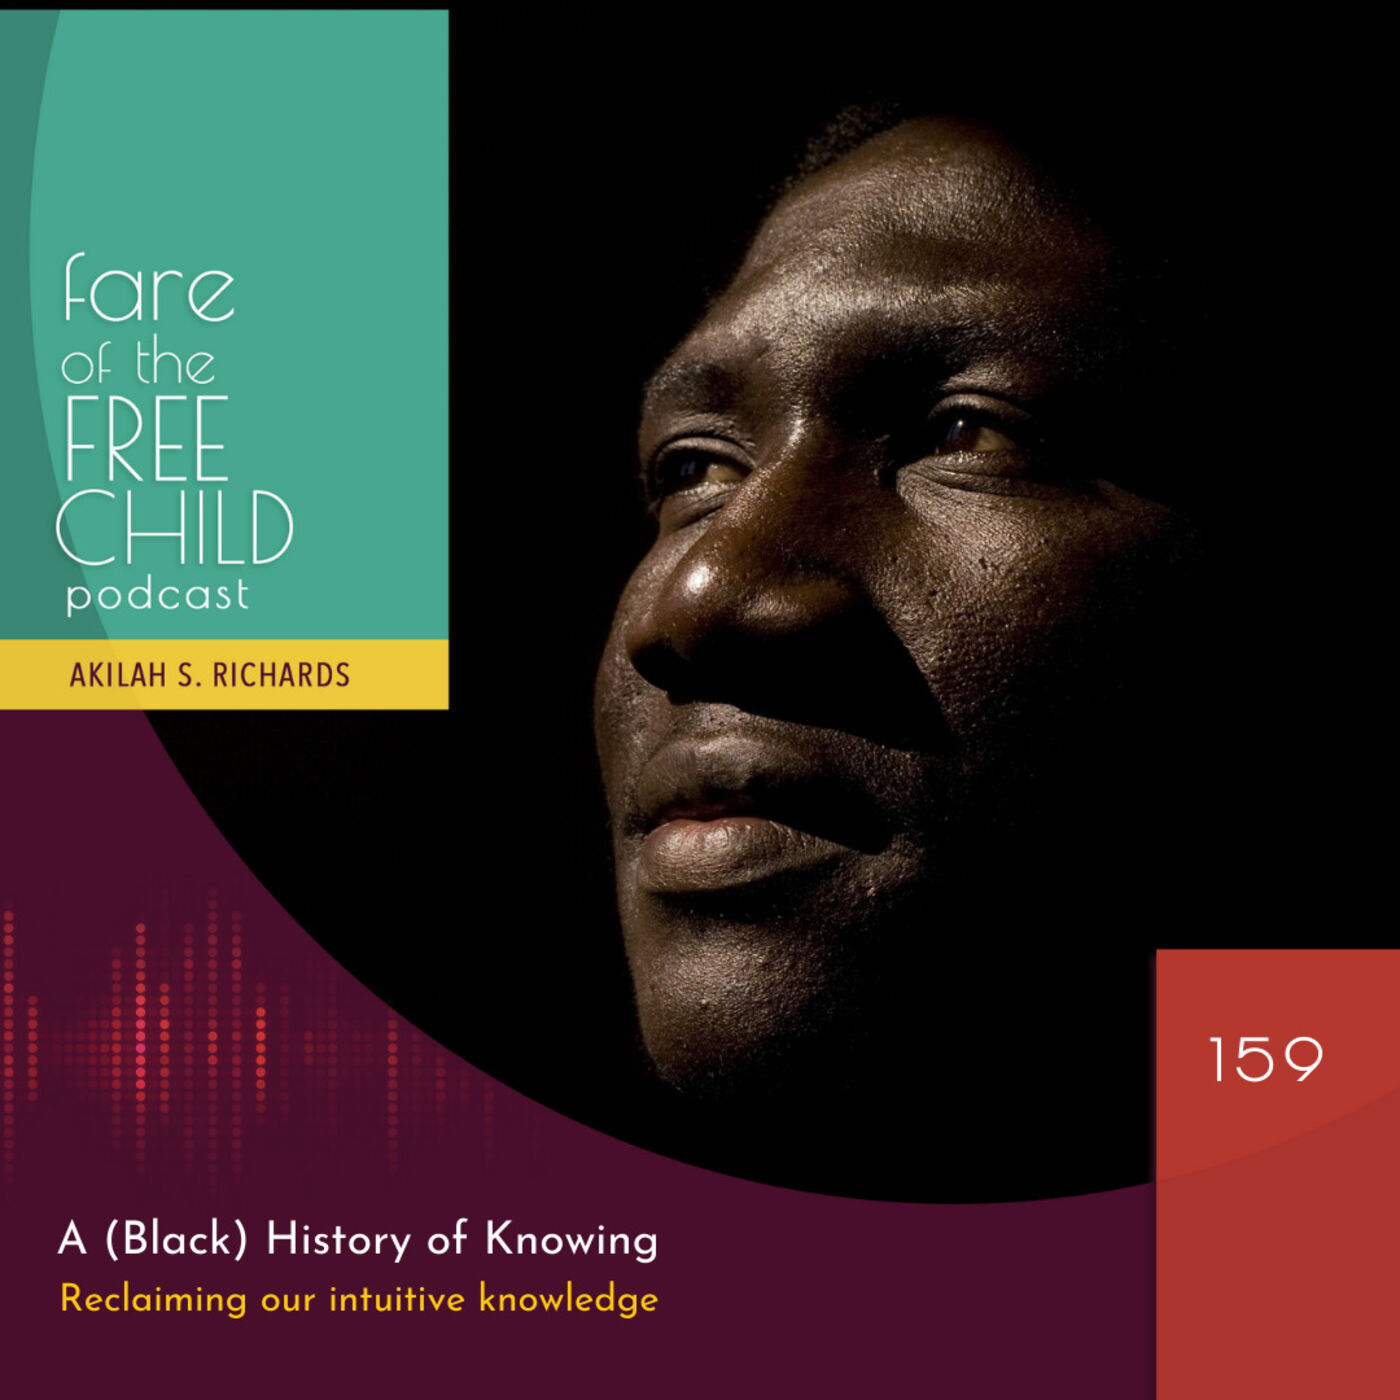 Ep 159: A (Black) History of Knowing